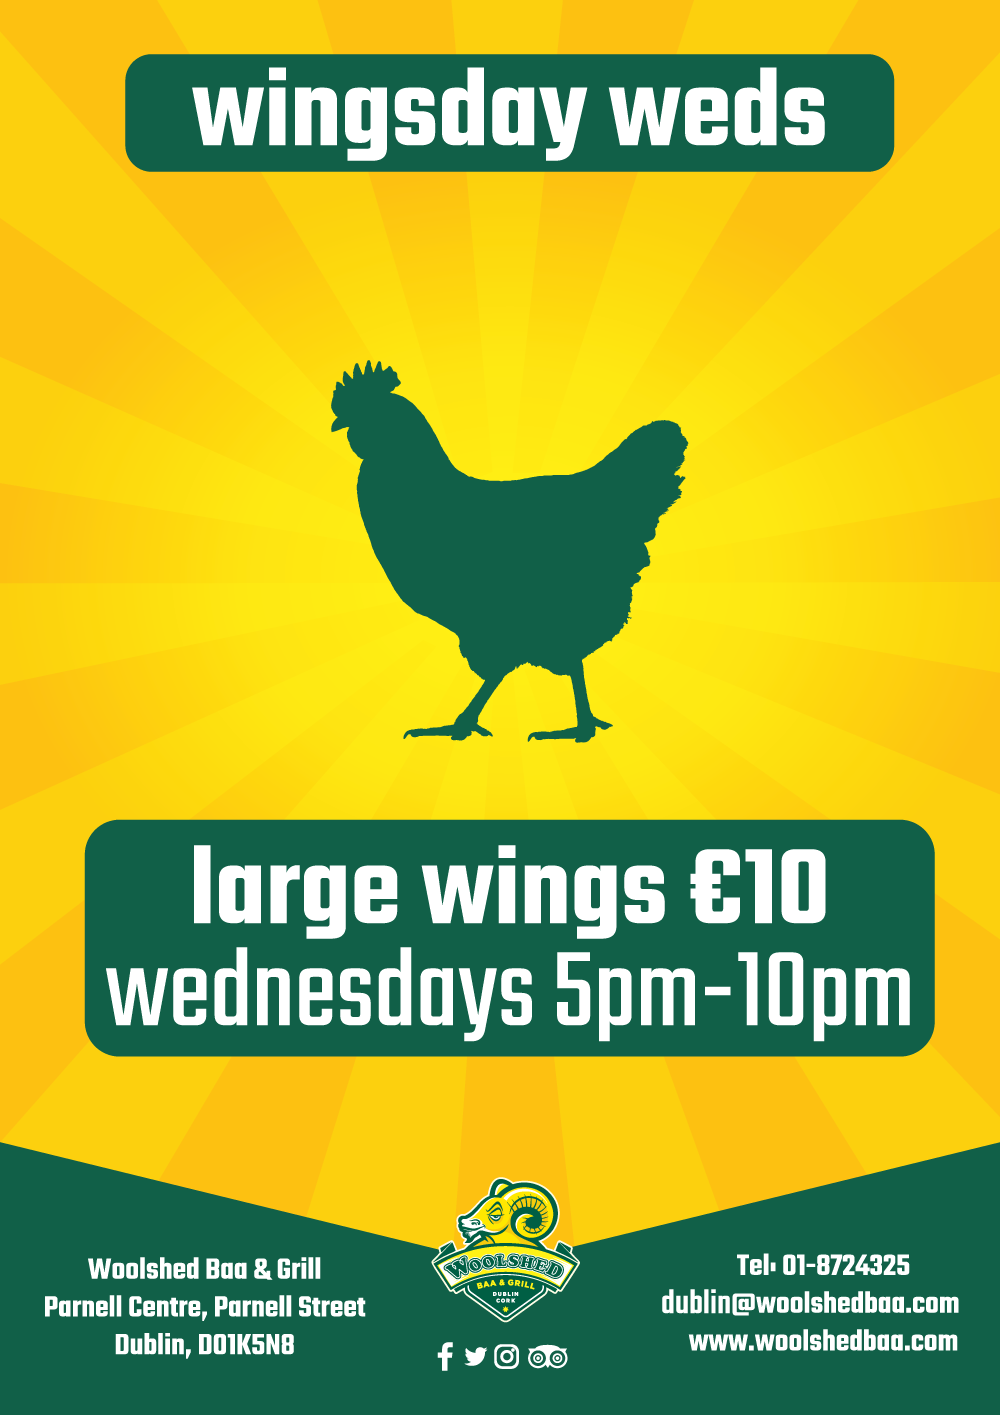 Wingsday Weds